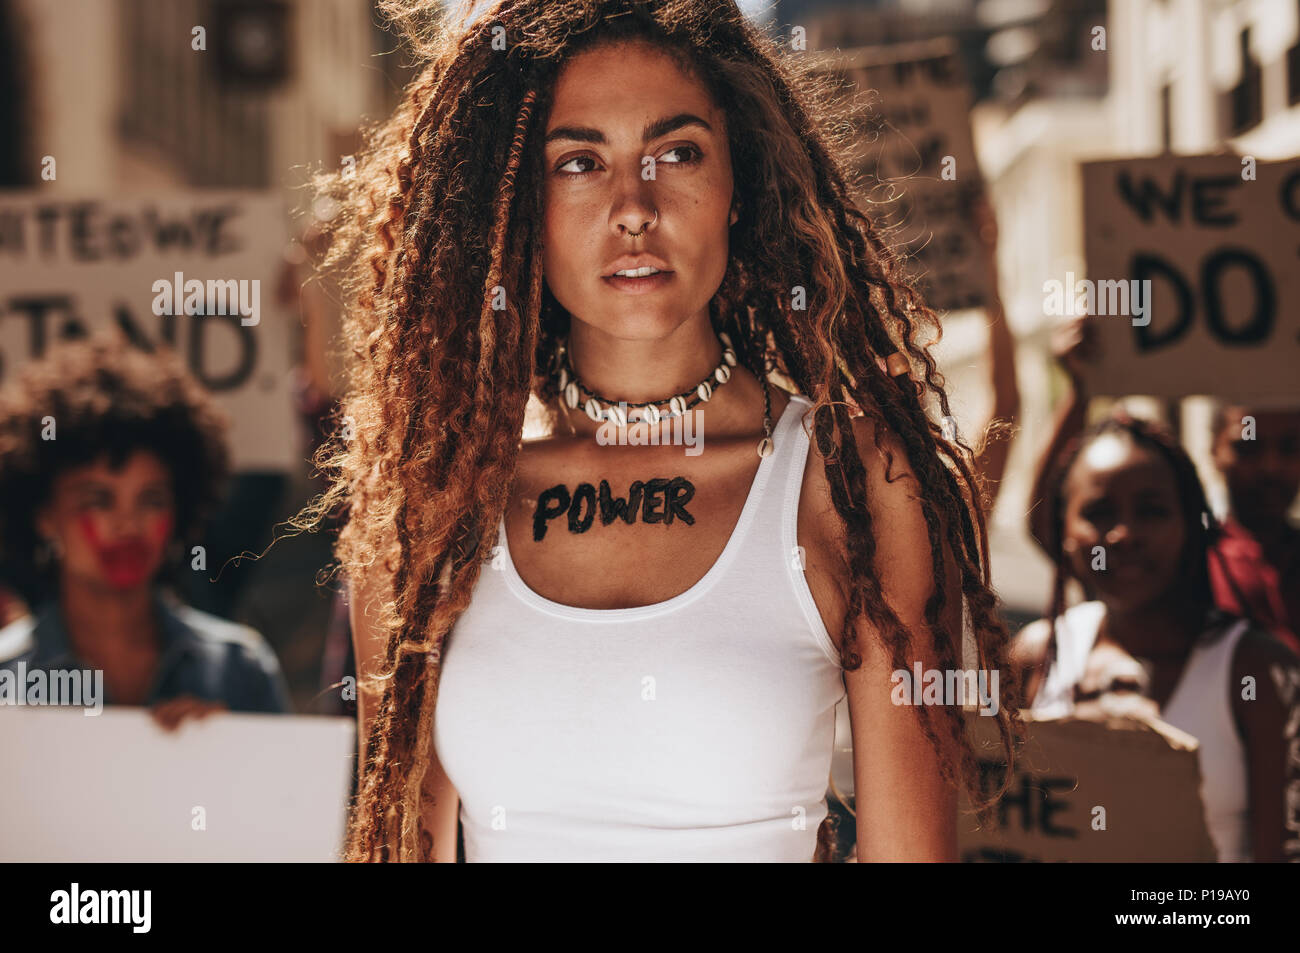 Young woman standing outdoors with group of activists in background. Woman with word power written on her chest and looking away. - Stock Image